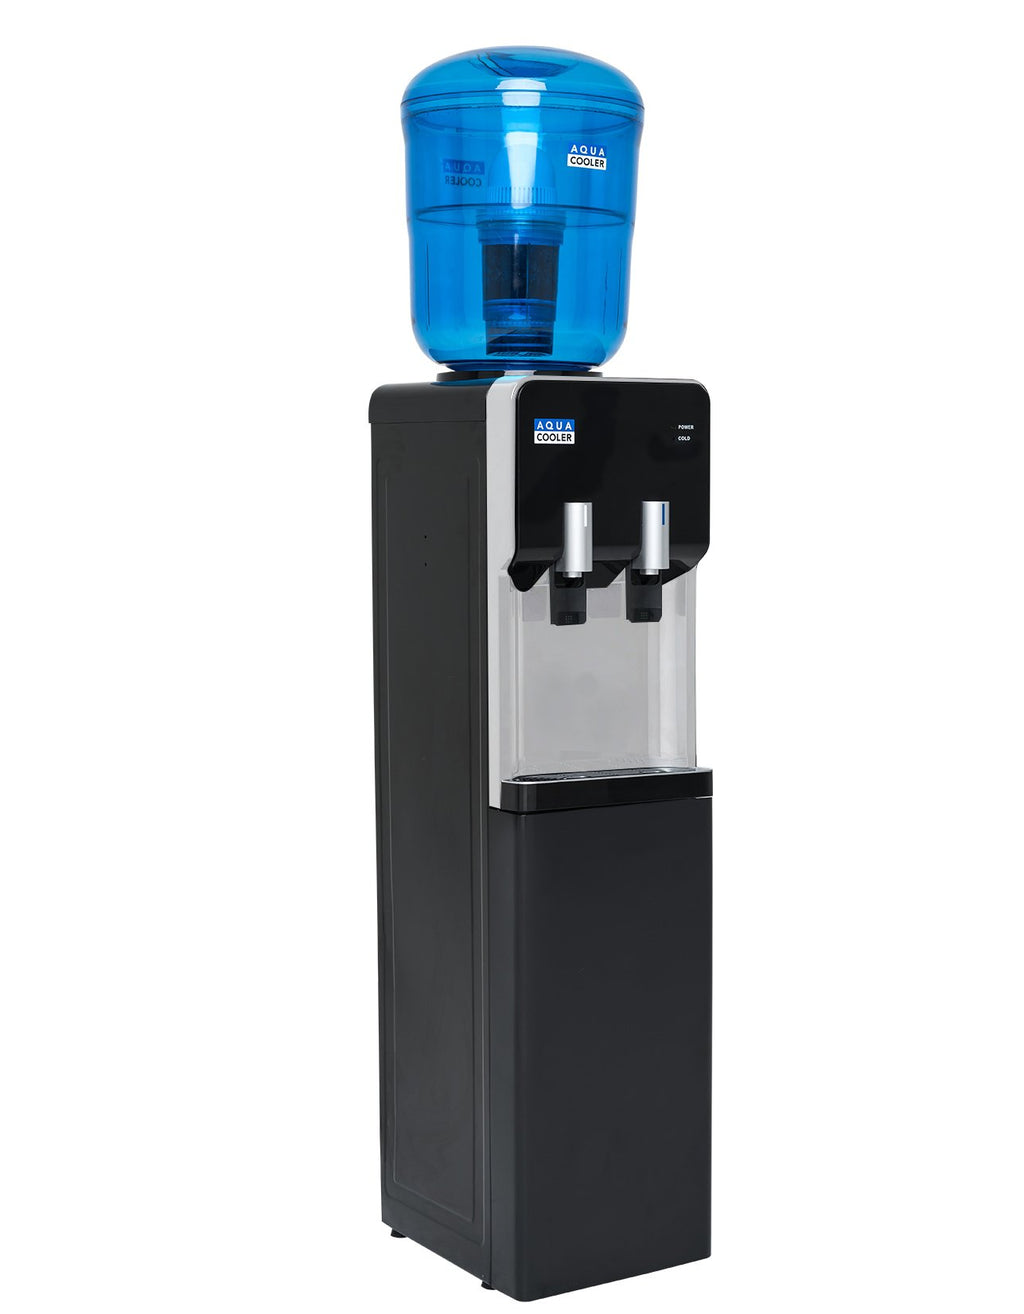 Odyssey Eco Package Water Cooler - Includes Refillable Bottle